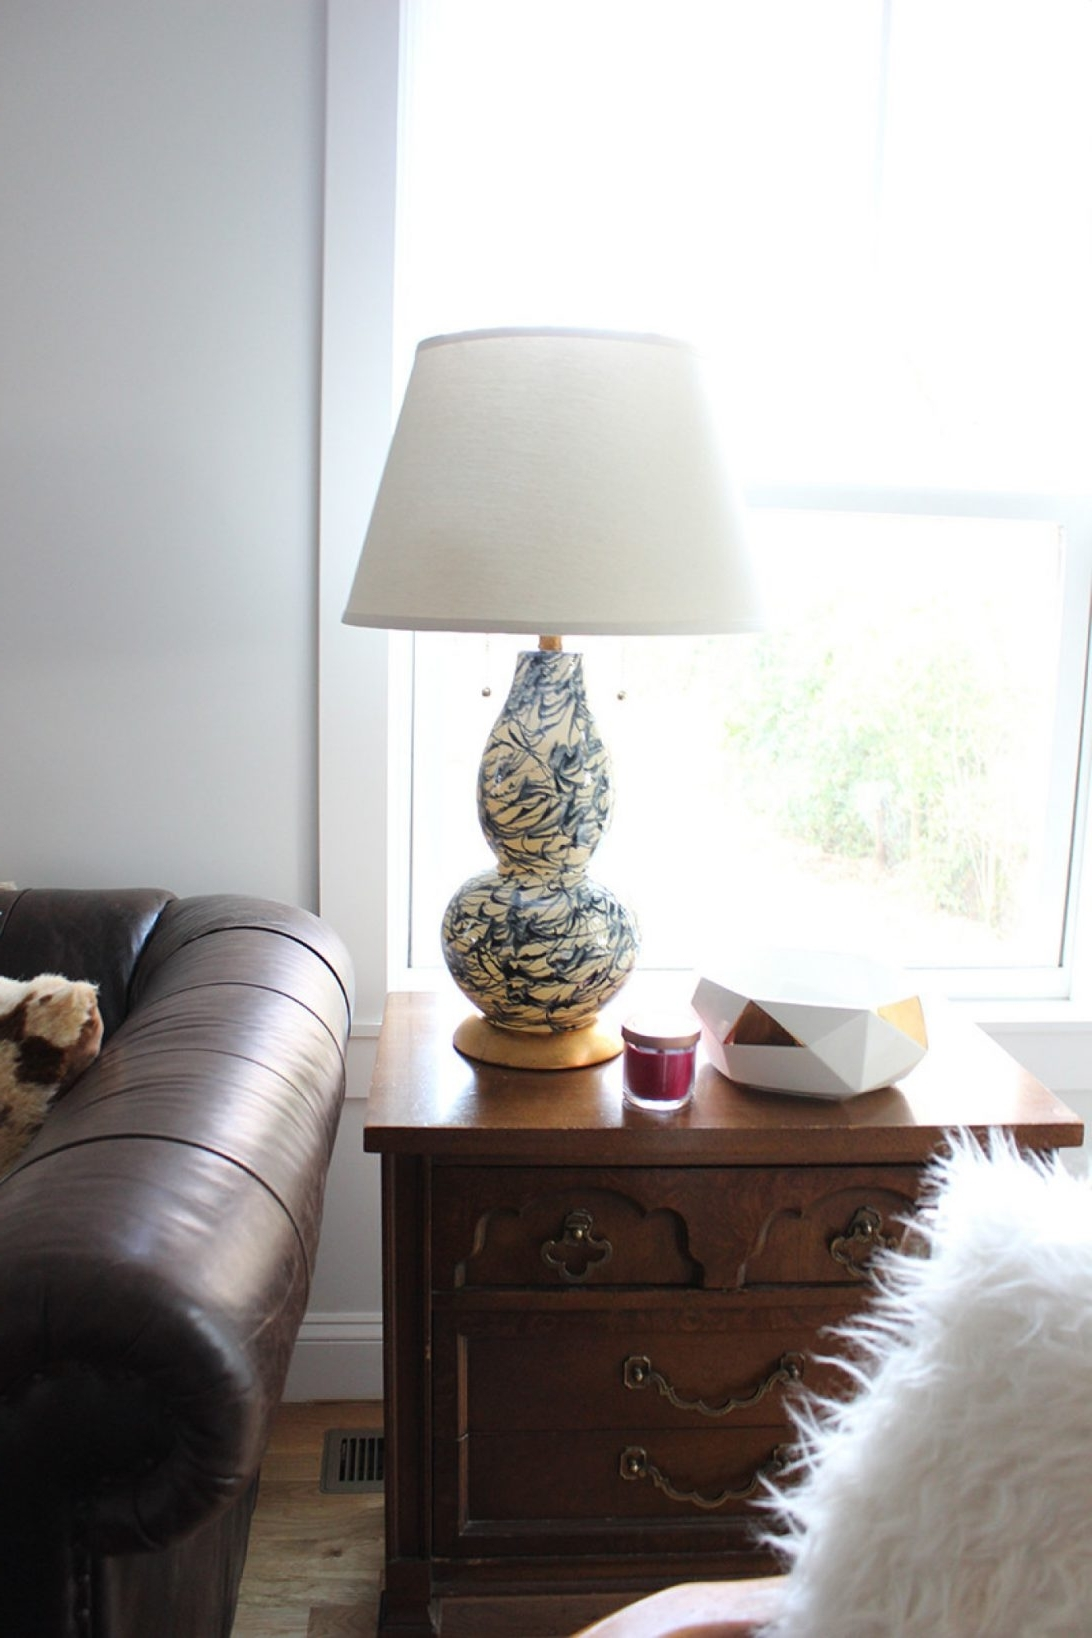 Fashionable 62 Most Skookum Bedside Lights Brass Table Lamp Big Lamps For Living With Tall Table Lamps For Living Room (View 4 of 20)